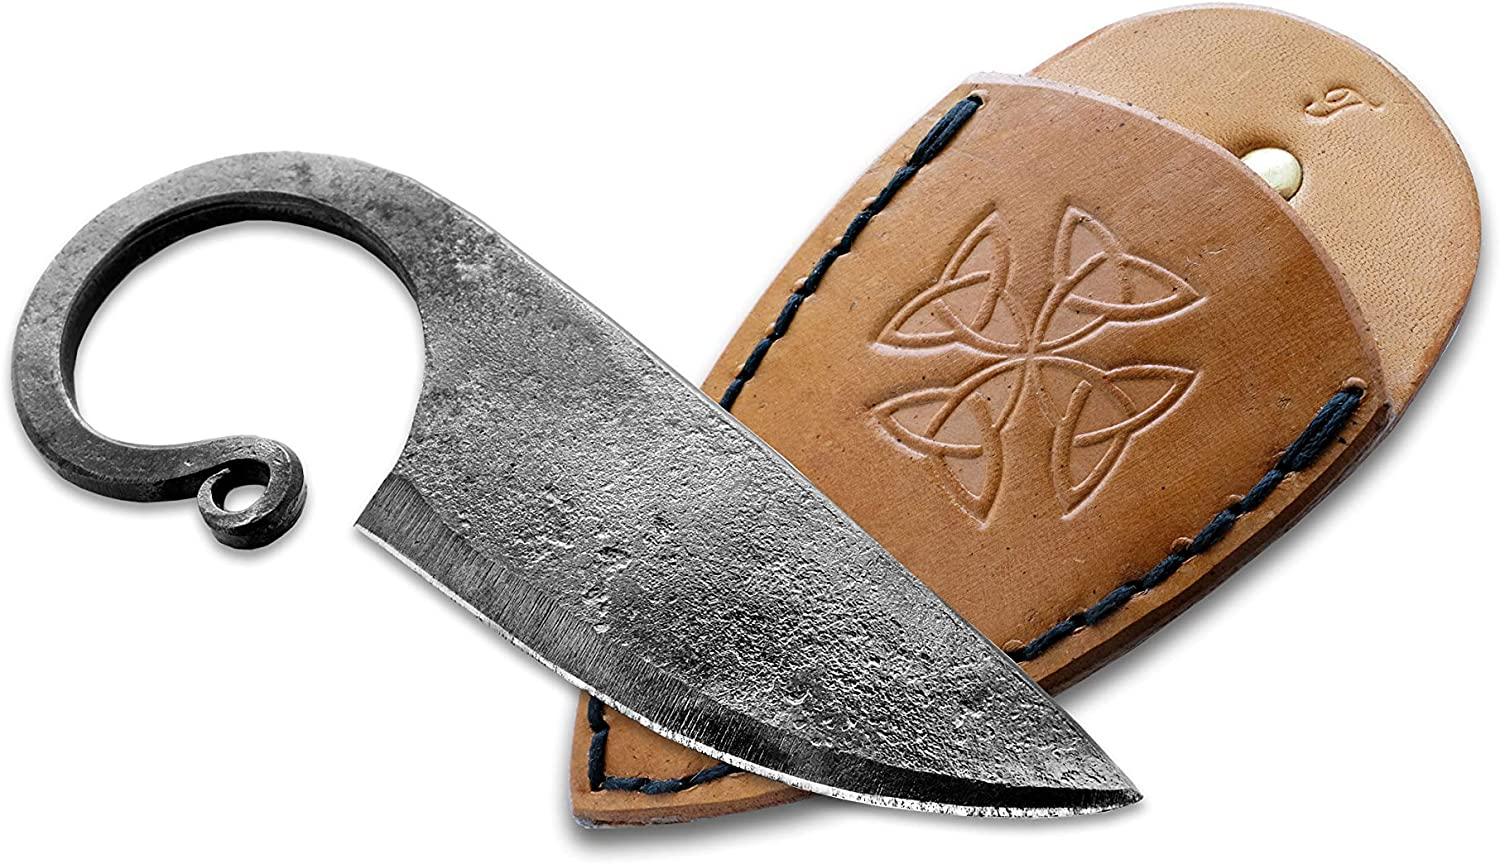 Toferner Original Gift, Beautiful Product – Celtic Pocket Knife On a Belt, Hand Forged Knife.Hardened Blade, Vintage, Art Collection, Antiquity, Great.Beautiful Product.